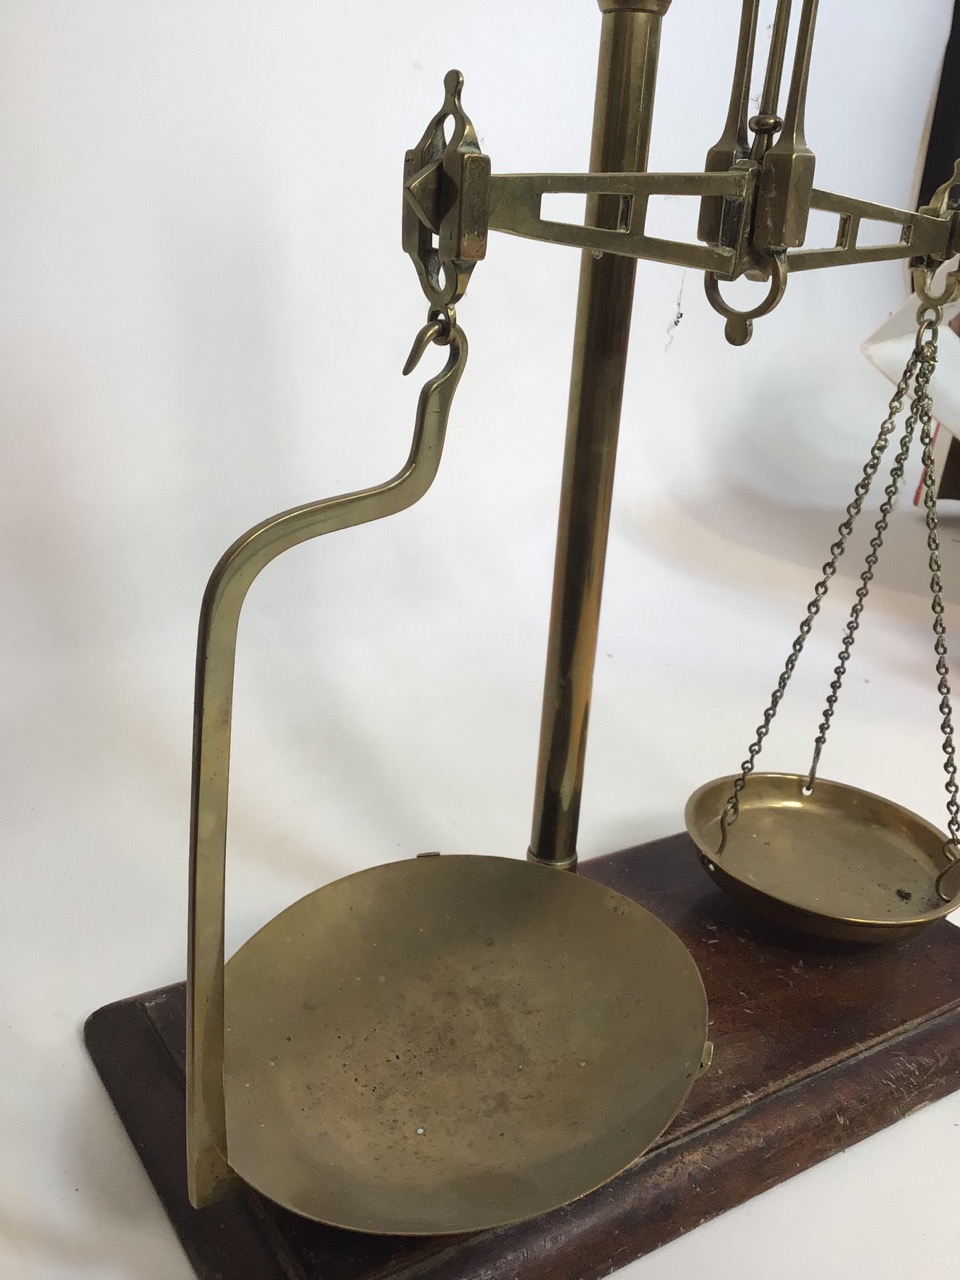 A set of brass post office scales. With original Todd's scale works label. H:43cm - Image 4 of 6